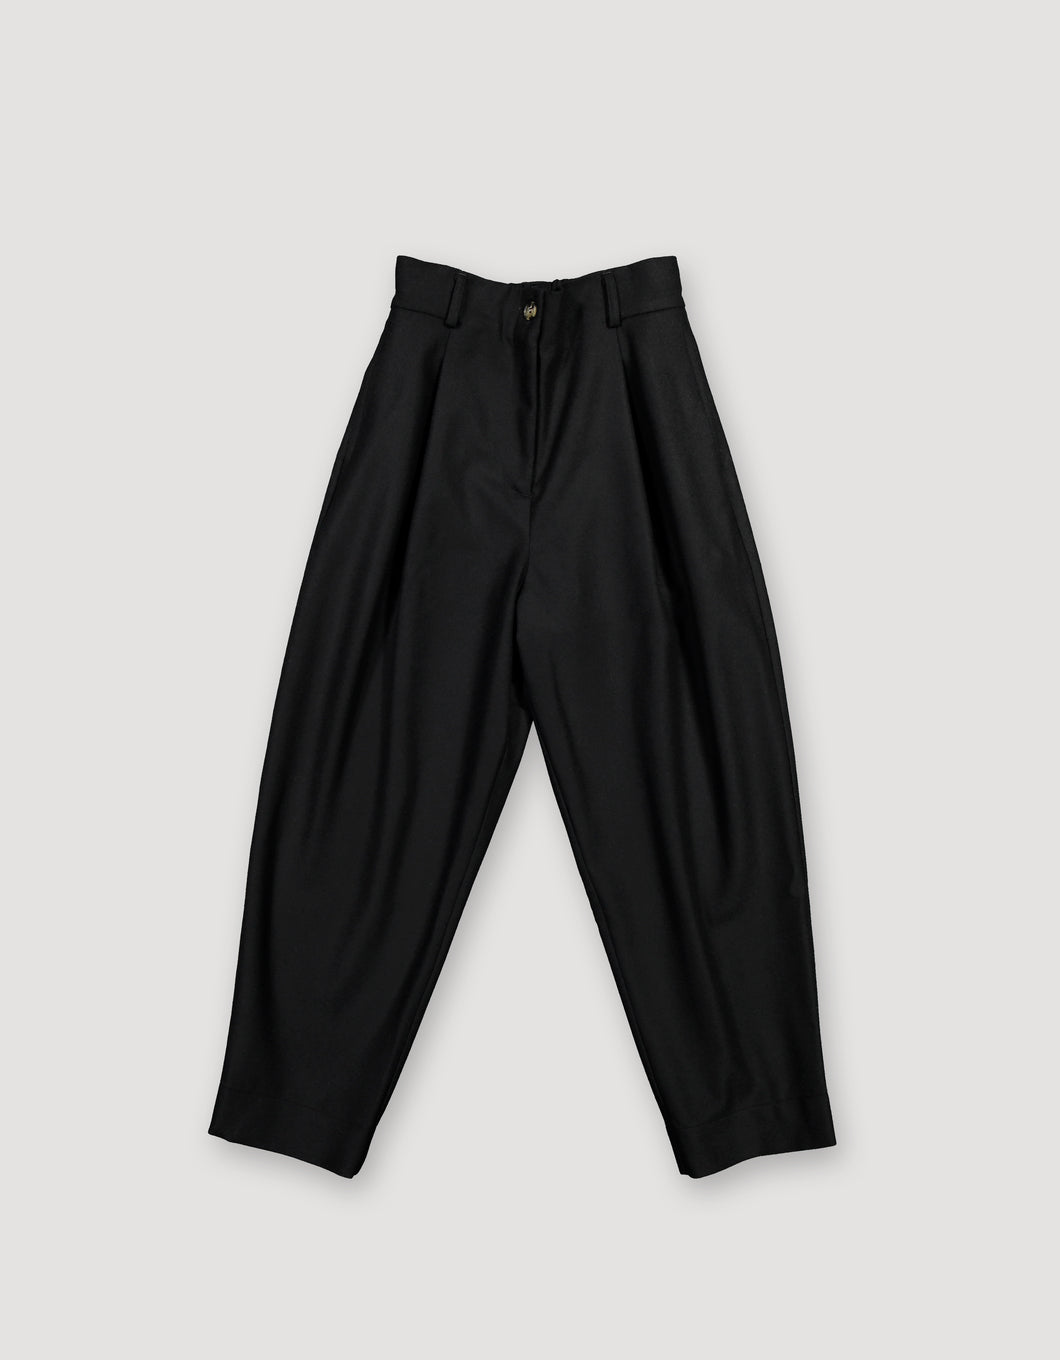 PLEATED WOOL TROUSERS (BLACK)